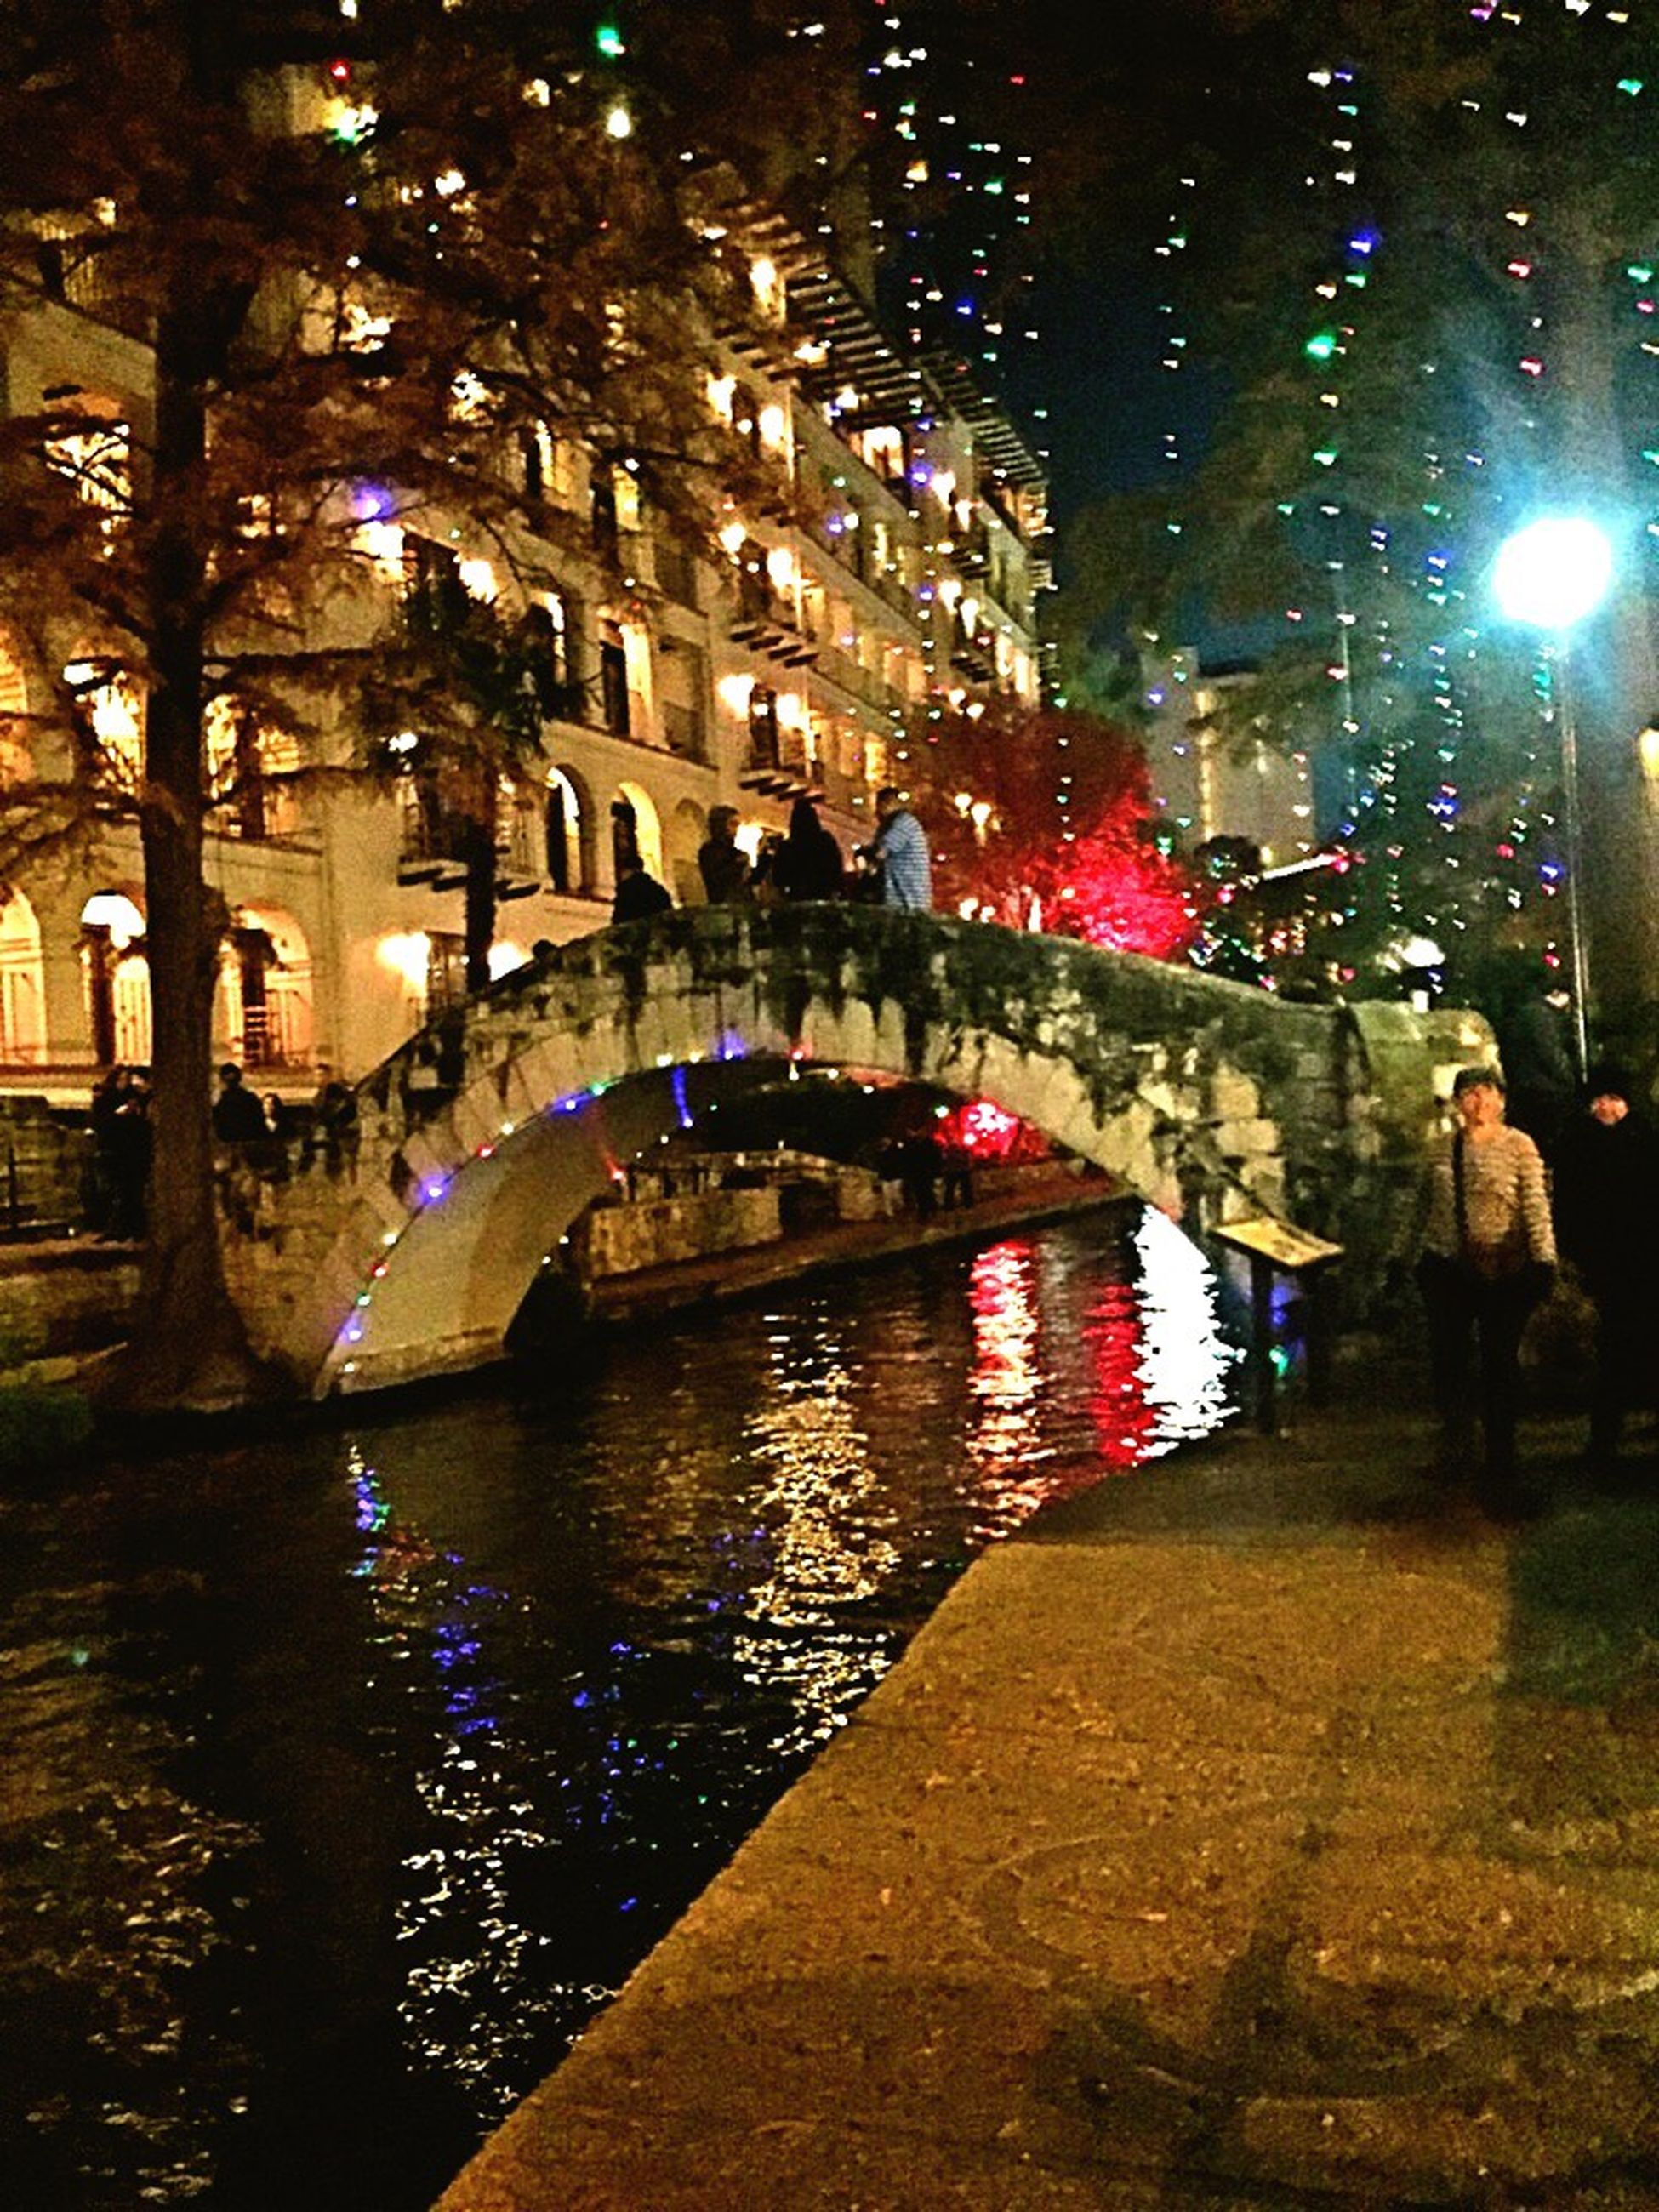 night, bridge - man made structure, people, illuminated, adult, only men, one person, adults only, outdoors, one man only, gondola - traditional boat